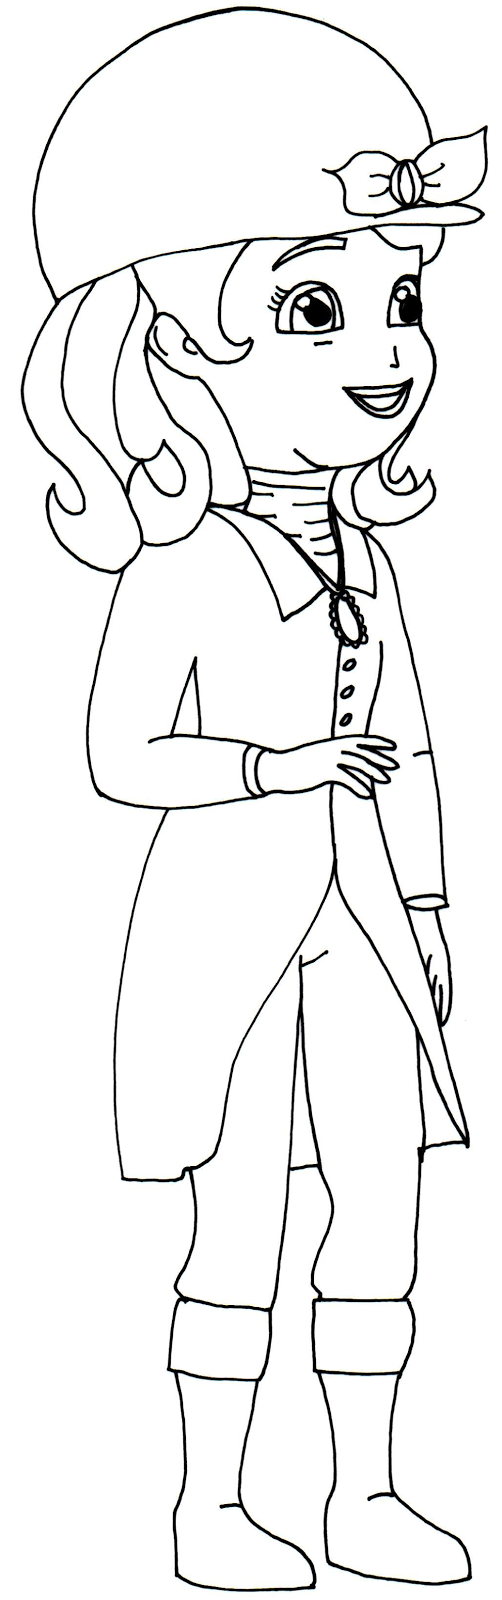 coloring pages of sofia the first - sofia the first coloring pages just one of the princes